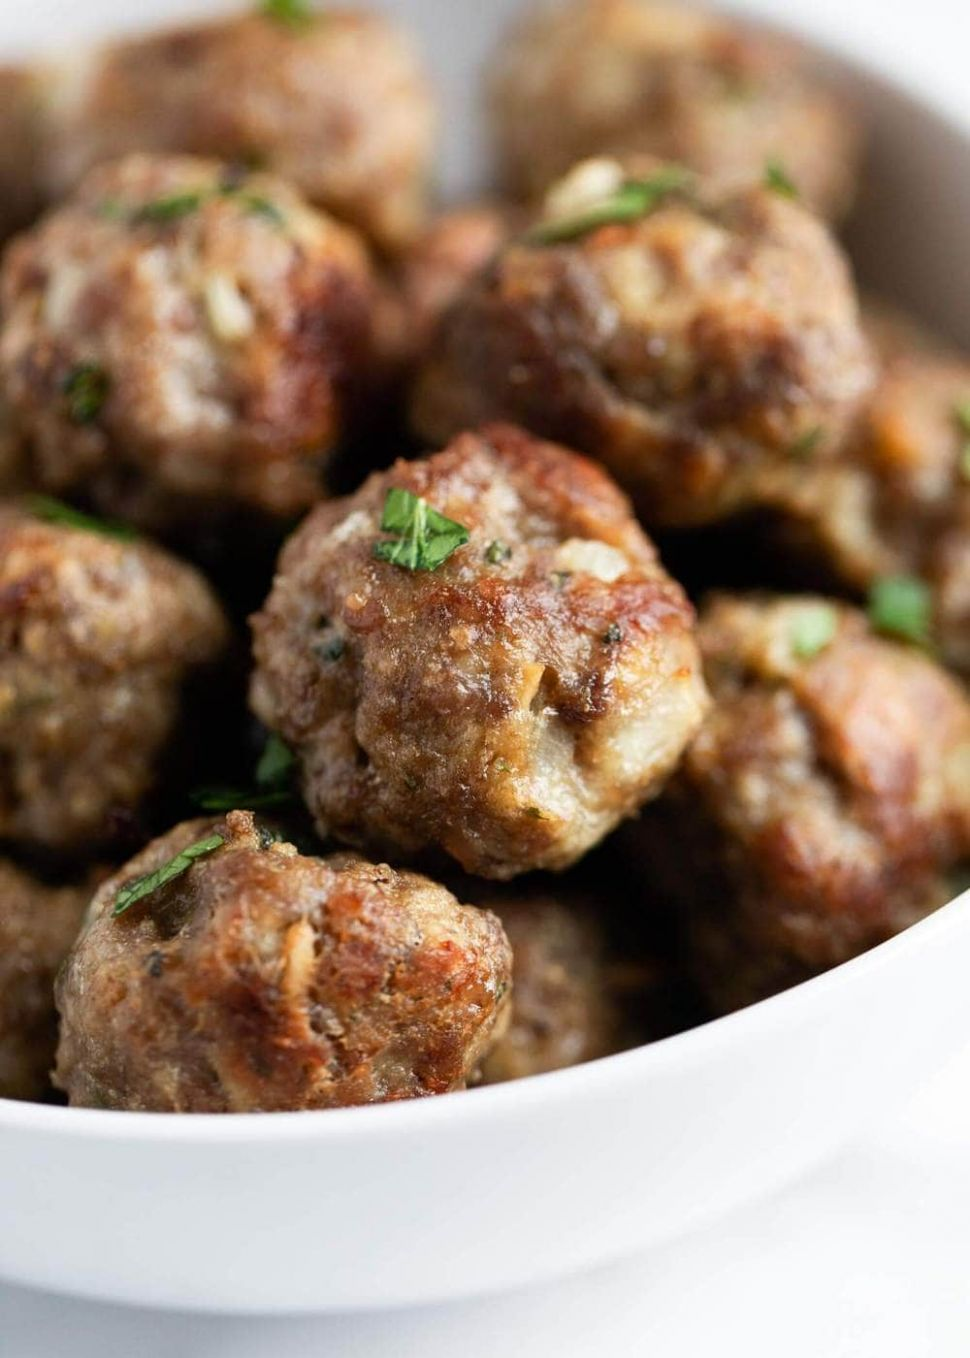 Easy Meatball Recipe - Recipes Beef Meatballs